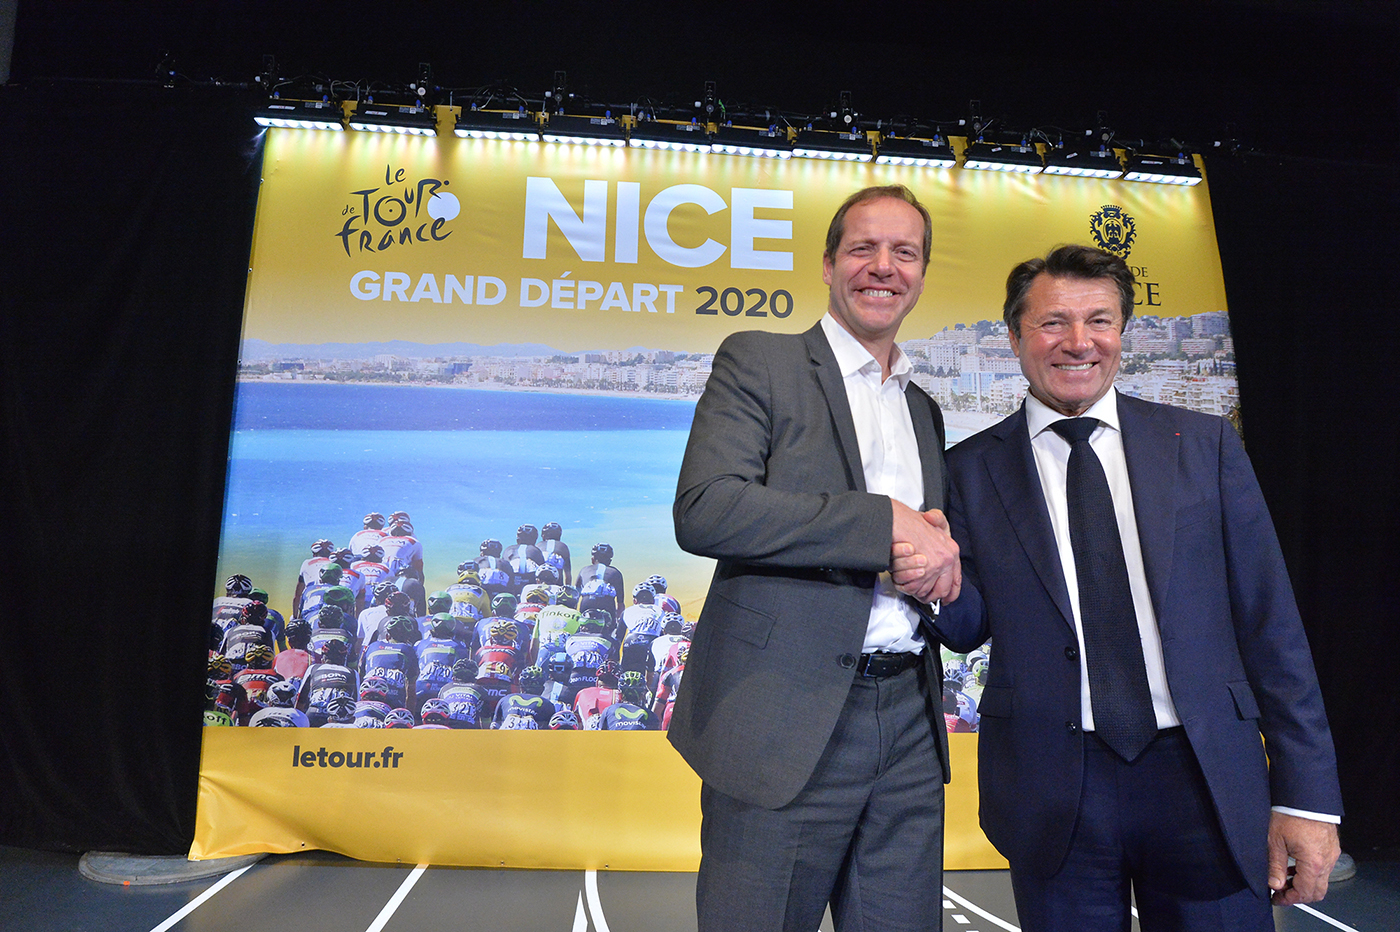 12/03/2018 - Tour de France - Conference Grand depart 2020 - Christian Prudhomme - directeur du Tour de France, Christian Estrosi, maire de Nice